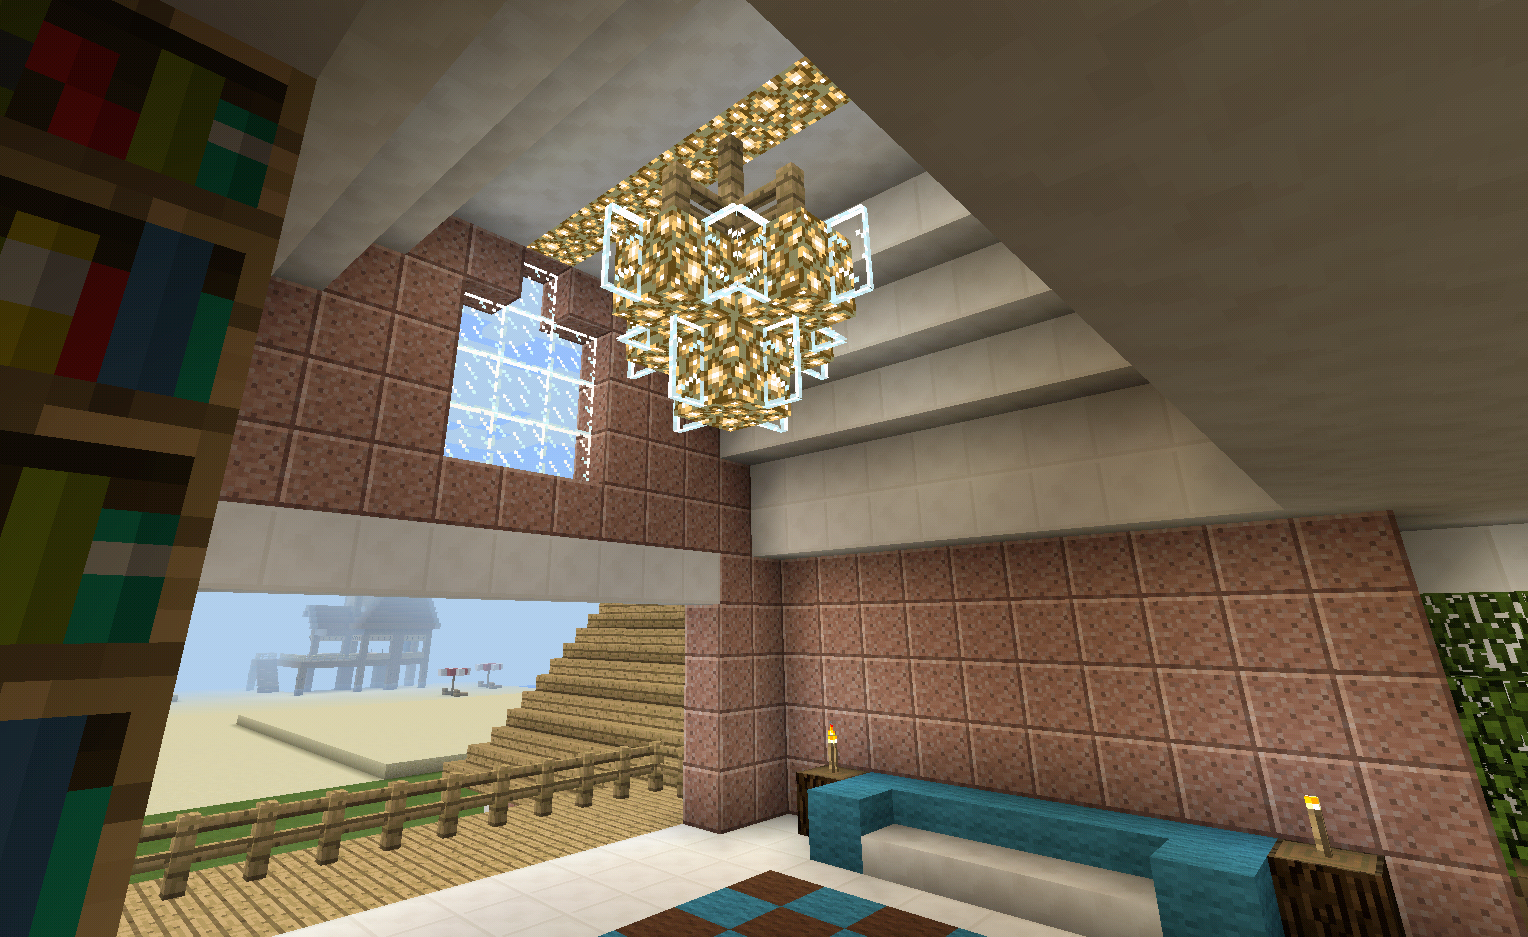 Minecraft chandelier lighting and balcony minecraft creations minecraft chandelier lighting and balcony aloadofball